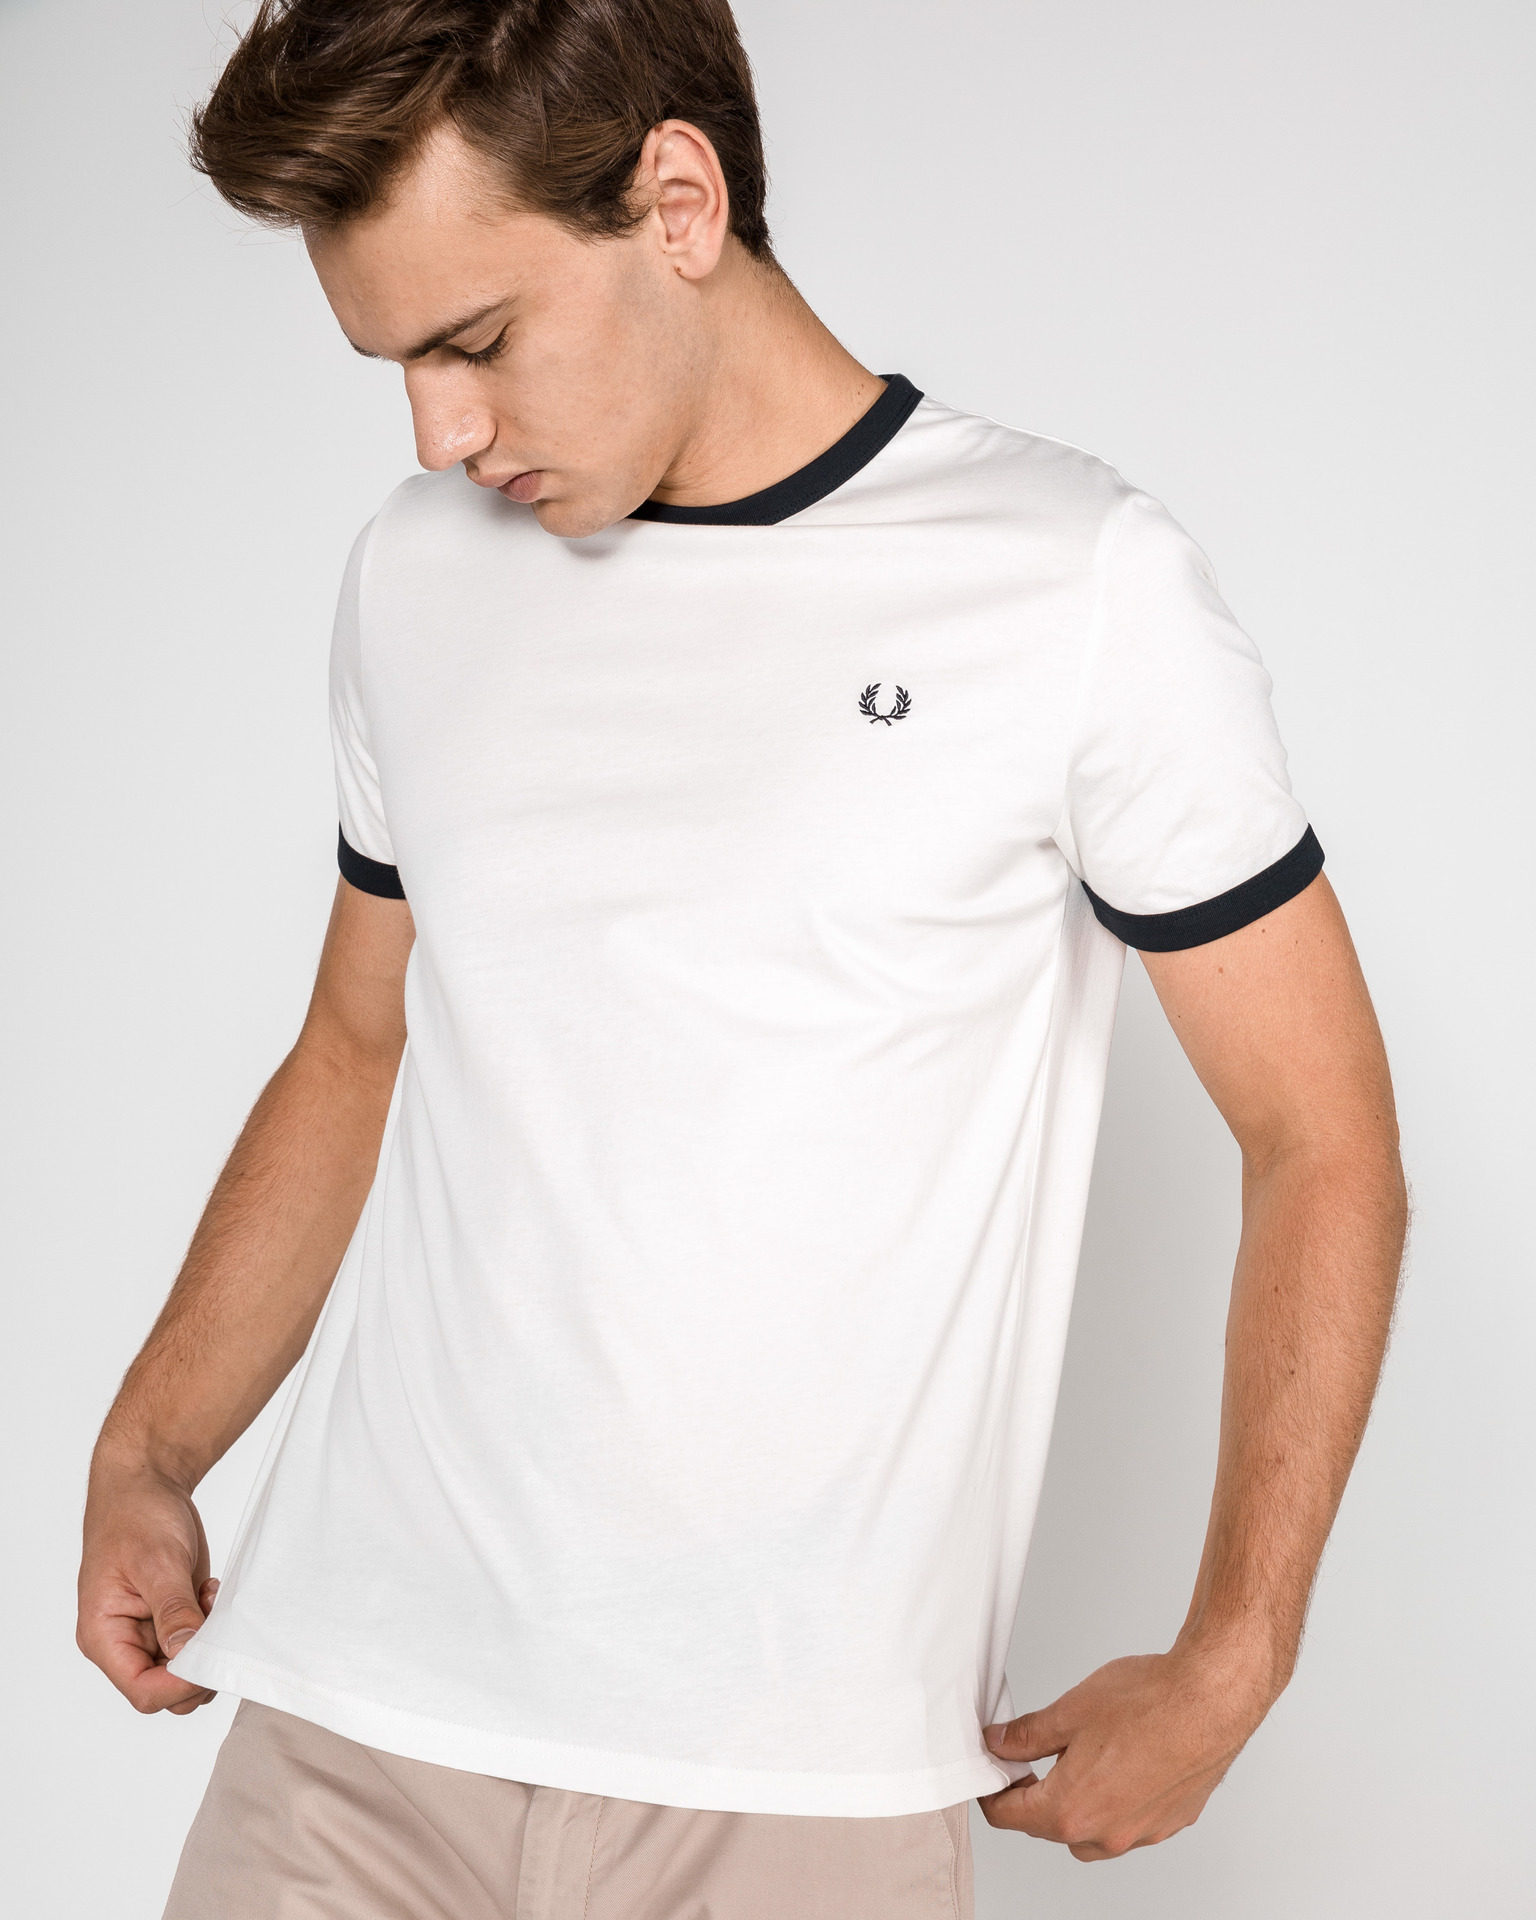 fred perry white t shirt sale Shop Clothing & Shoes Online